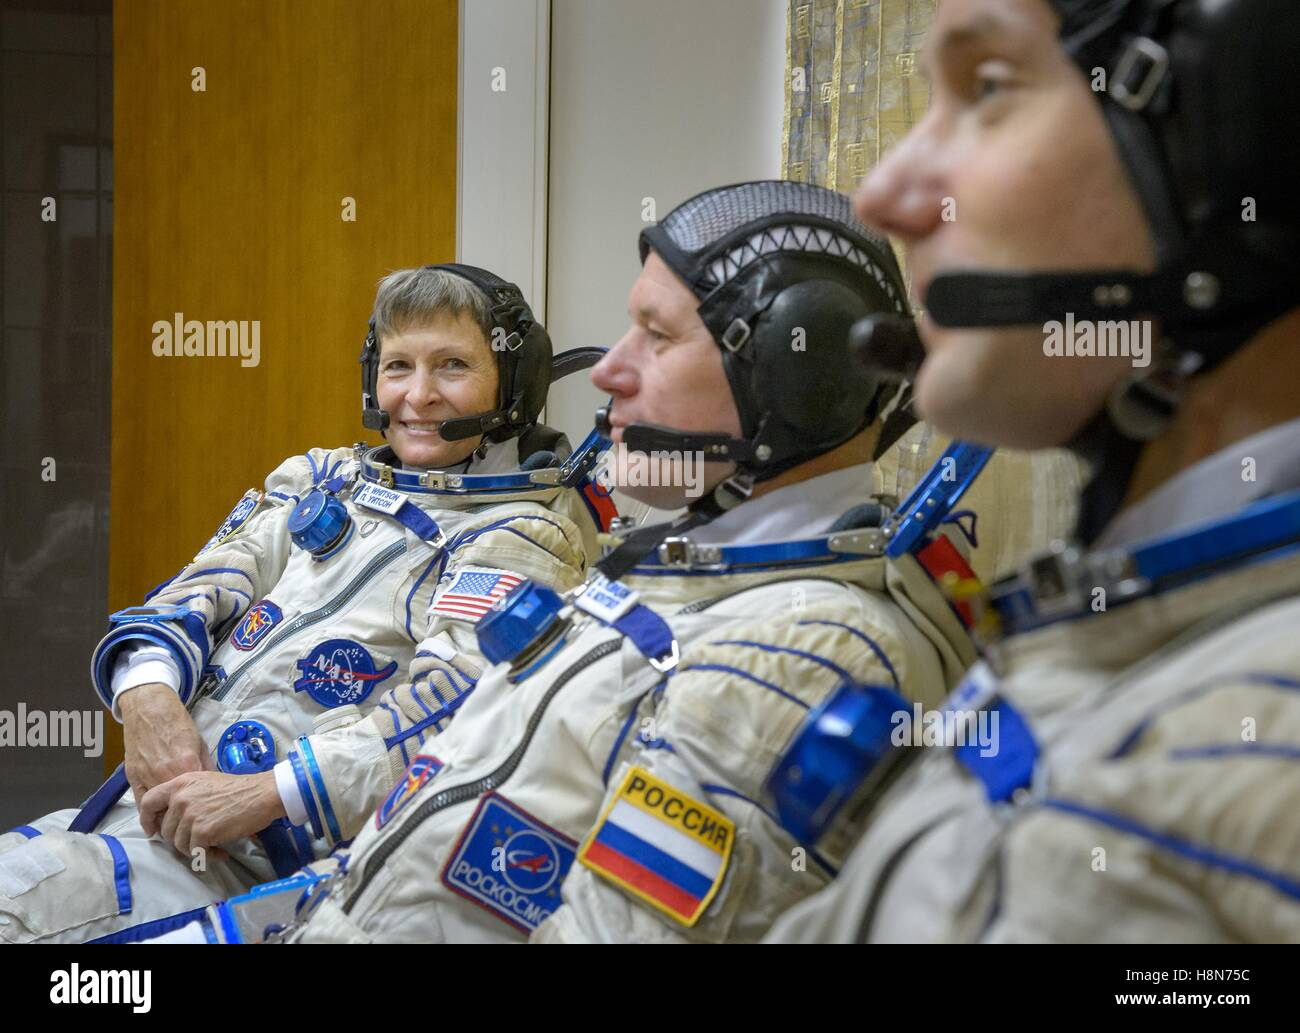 NASA International Space Station Expedition 50 Soyuz MS-03 prime crew astronauts (L-R), American astronaut Peggy - Stock Image